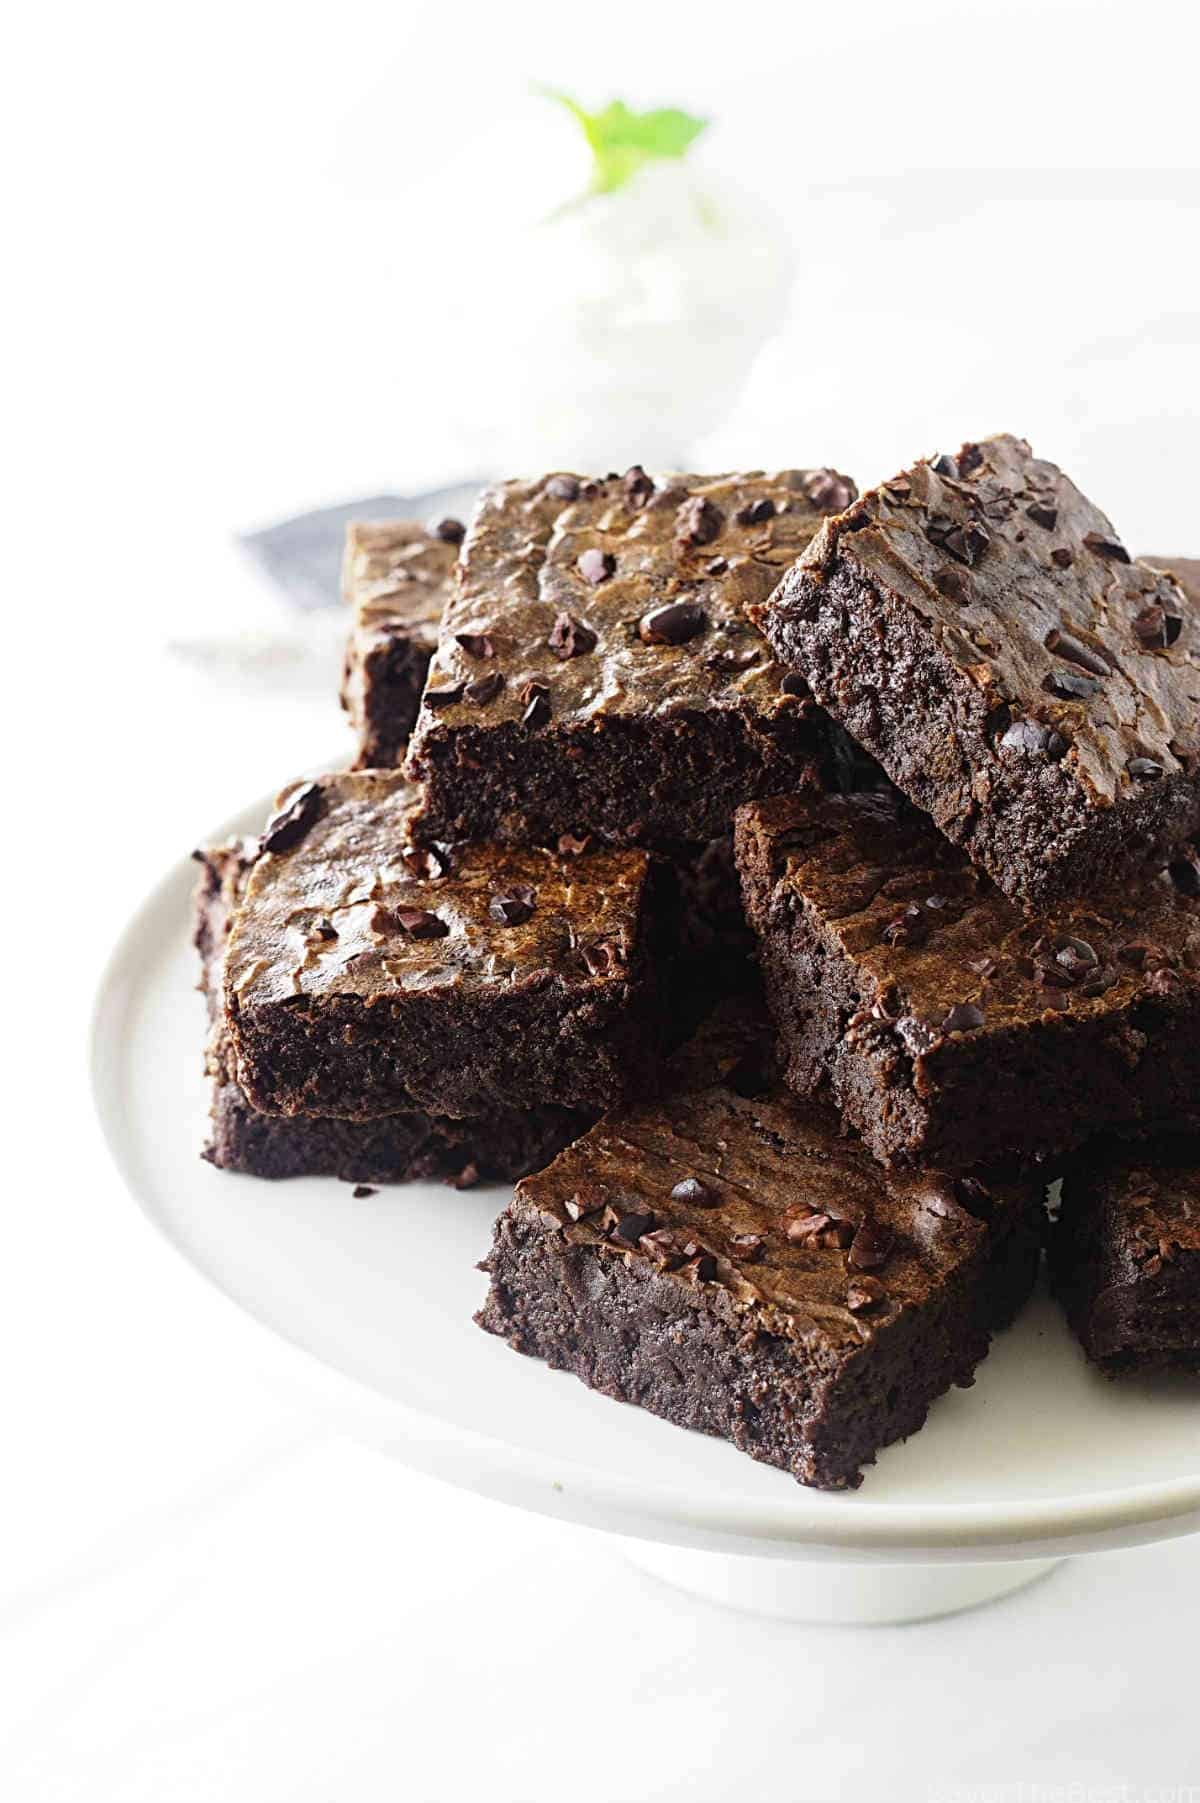 These fudgy brownies with cocoa nibs are made with the ancient grain Einkorn flour. They are fudgy delicious and the cocoa nibs are crisp and crunchy.